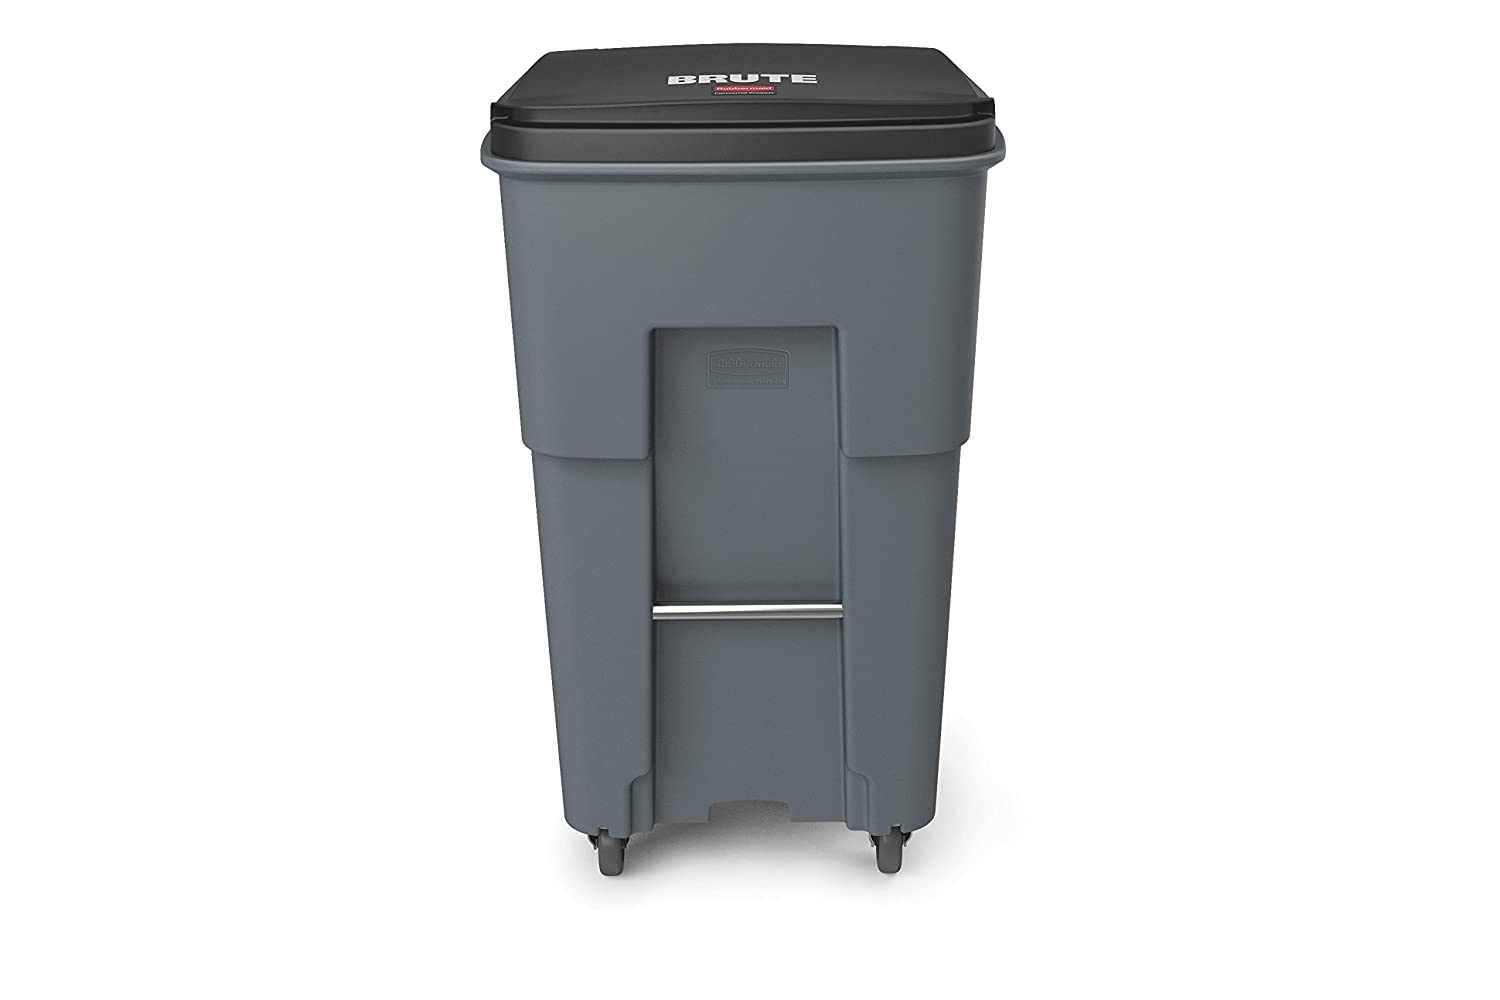 65 gal//246 L 44.740 Height Gray 25.330 Width Rubbermaid Commercial 1971971 Brute Rollout Trash Can with Casters